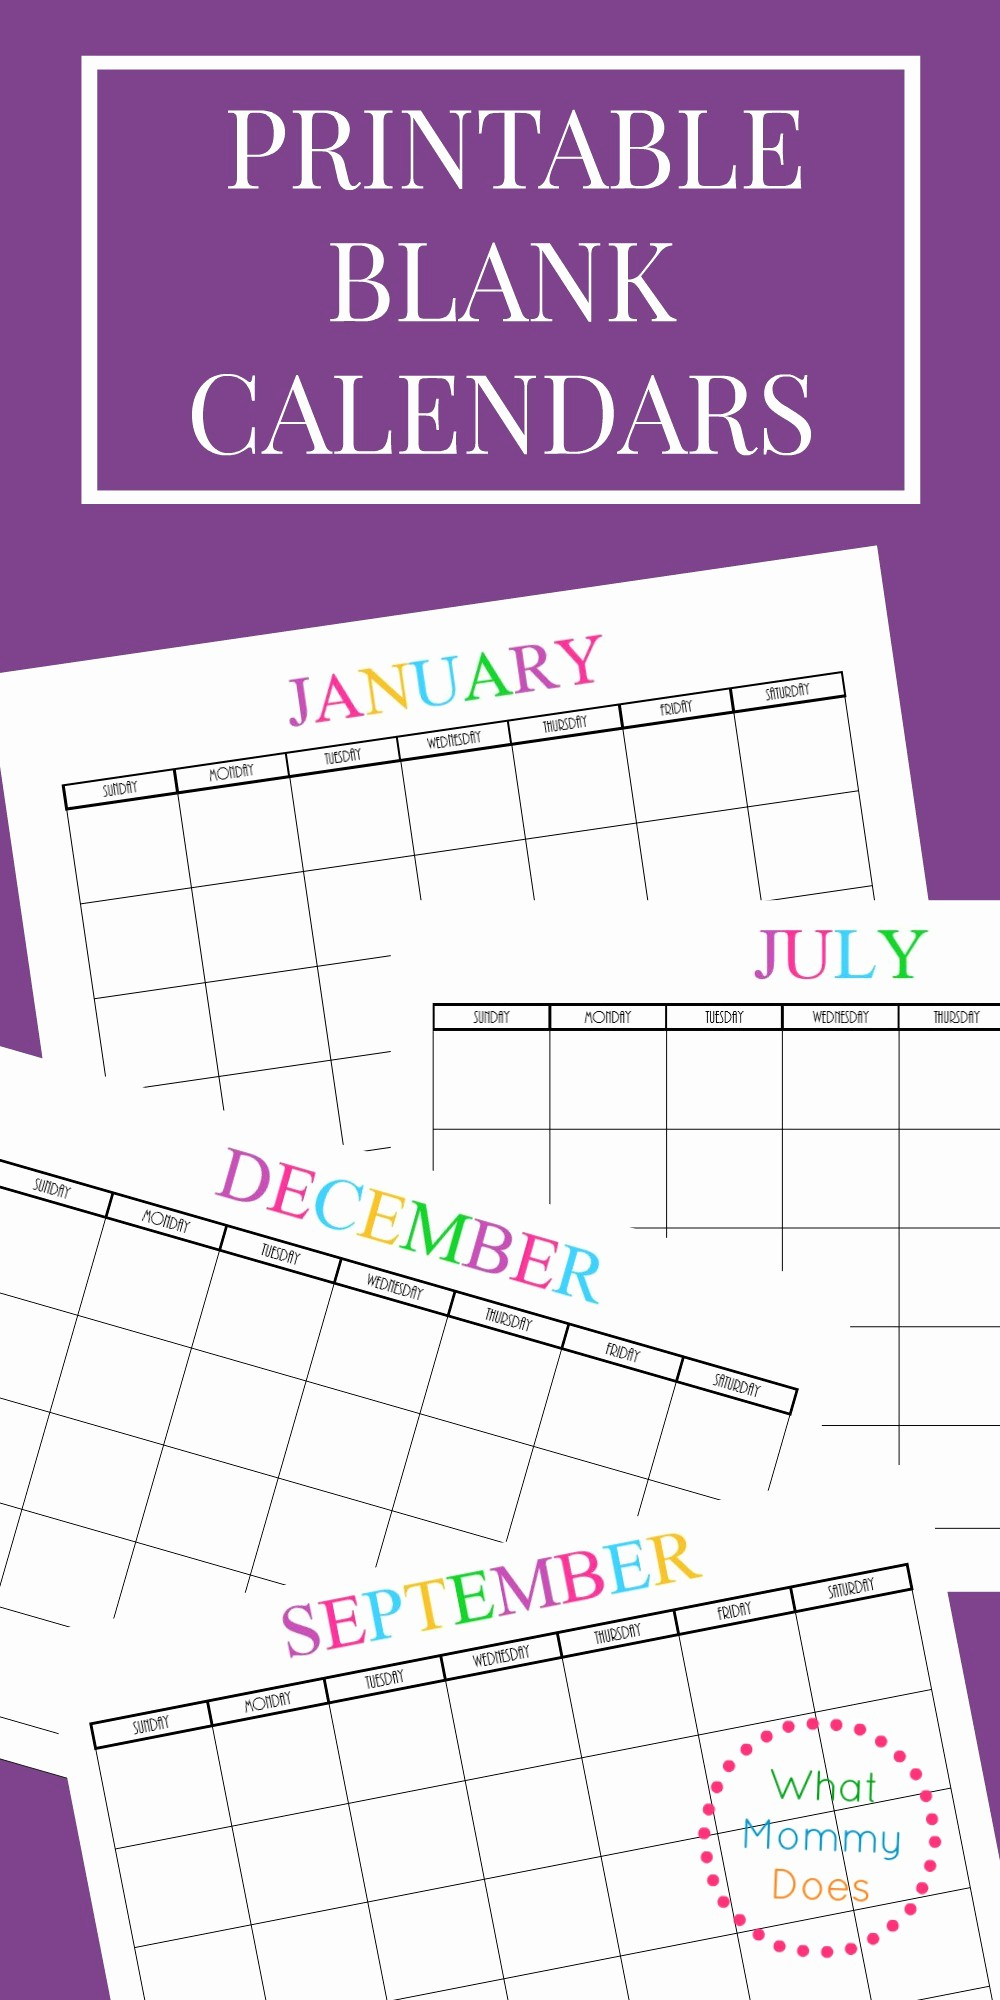 Editable Calendar 2017-2018 Lovely Free Printable Blank Monthly Calendars 2017 2018 2019